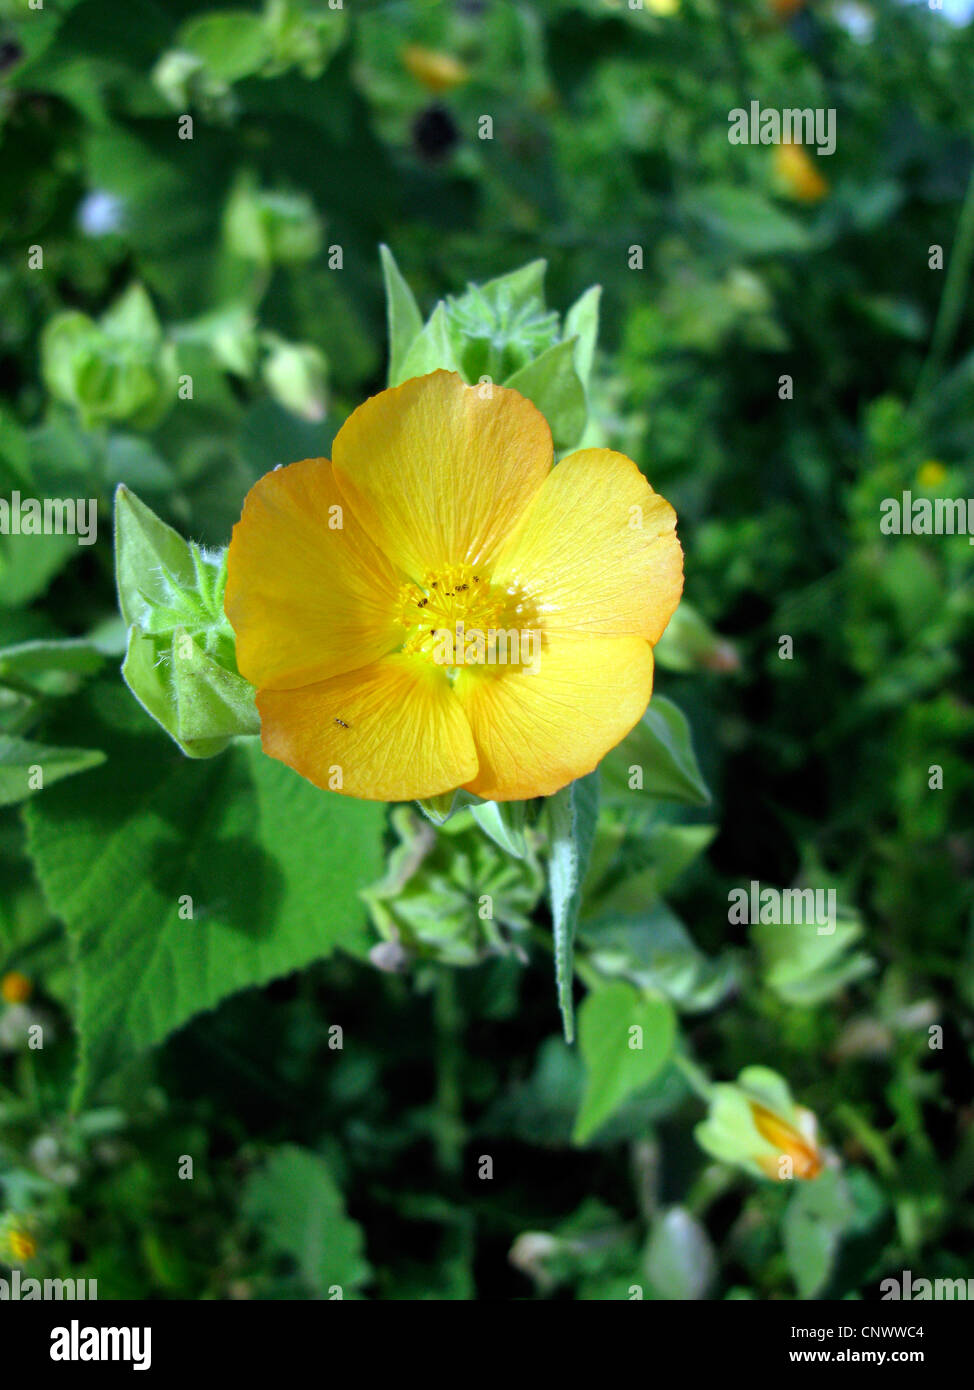 hairy abutilon, ma'o, flowering maple (Abutilon grandifolium), blooming, Canary Islands, Gomera - Stock Image